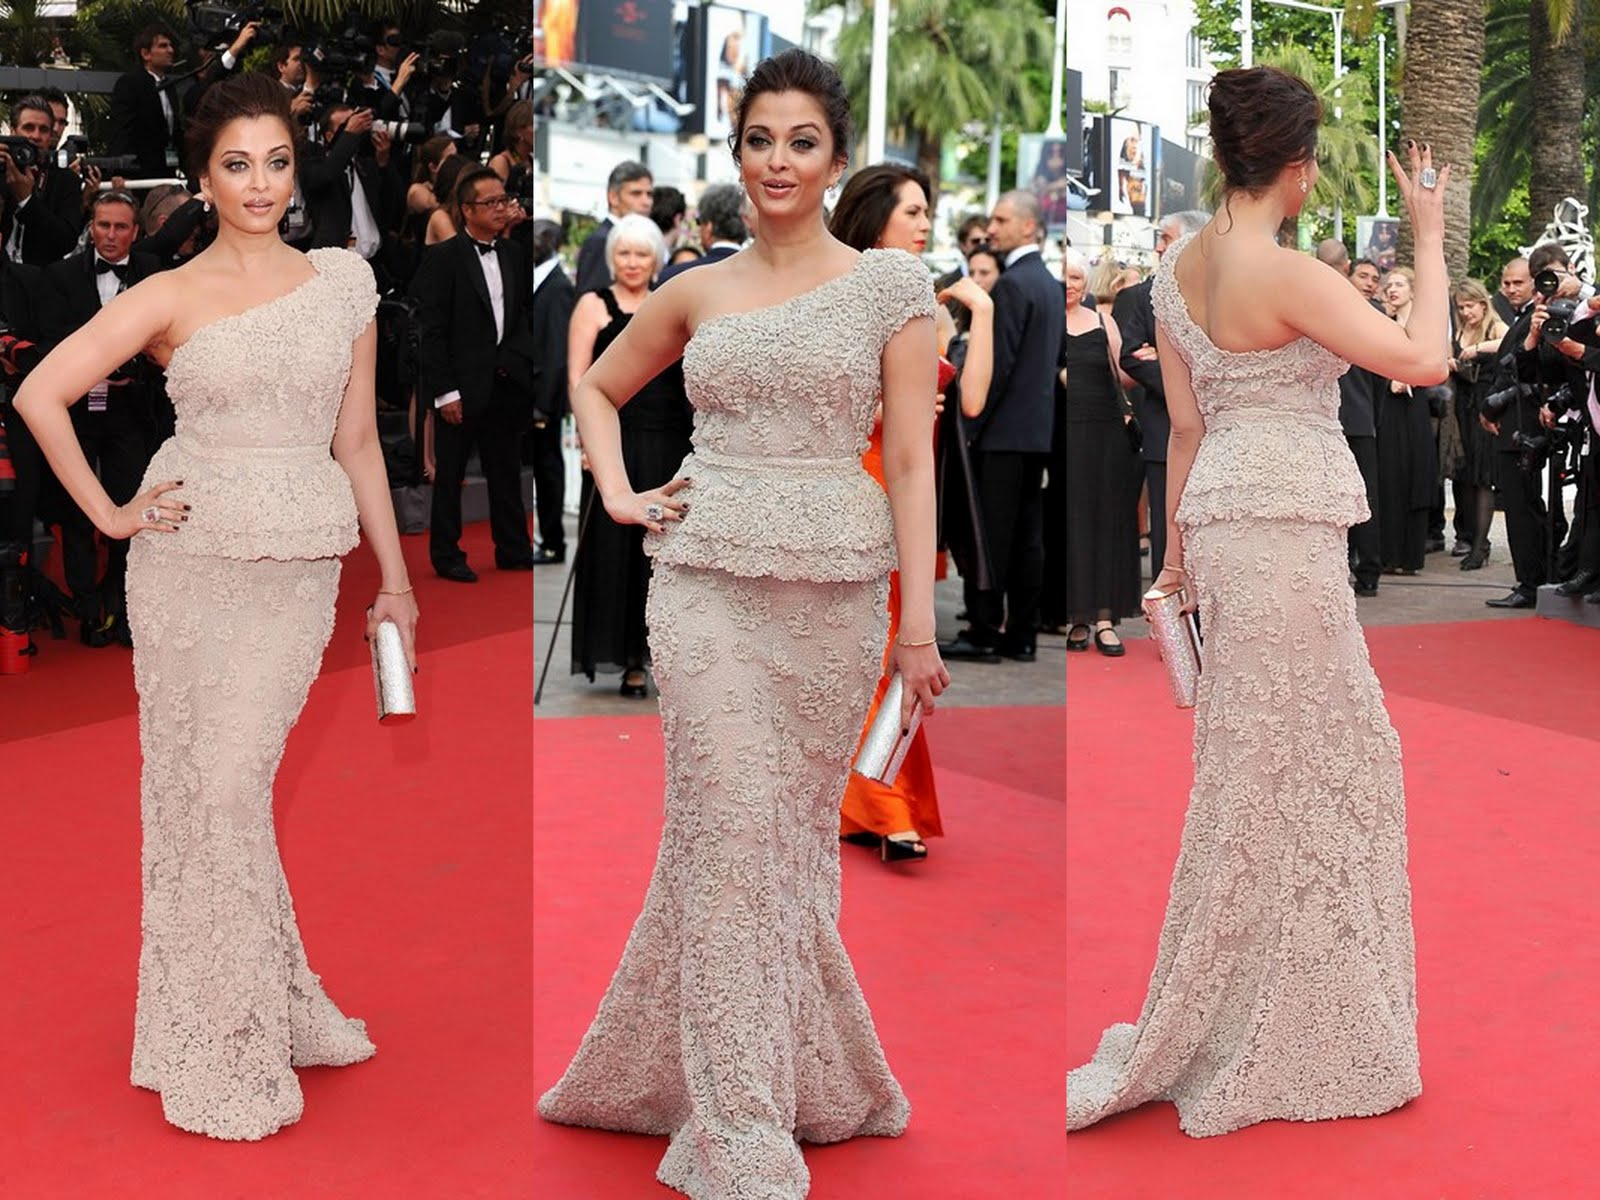 Indian-born-Hollywood-actress-Aishwarya-Rai-Bachchan-64th-Cannes-film-festival-May-2011